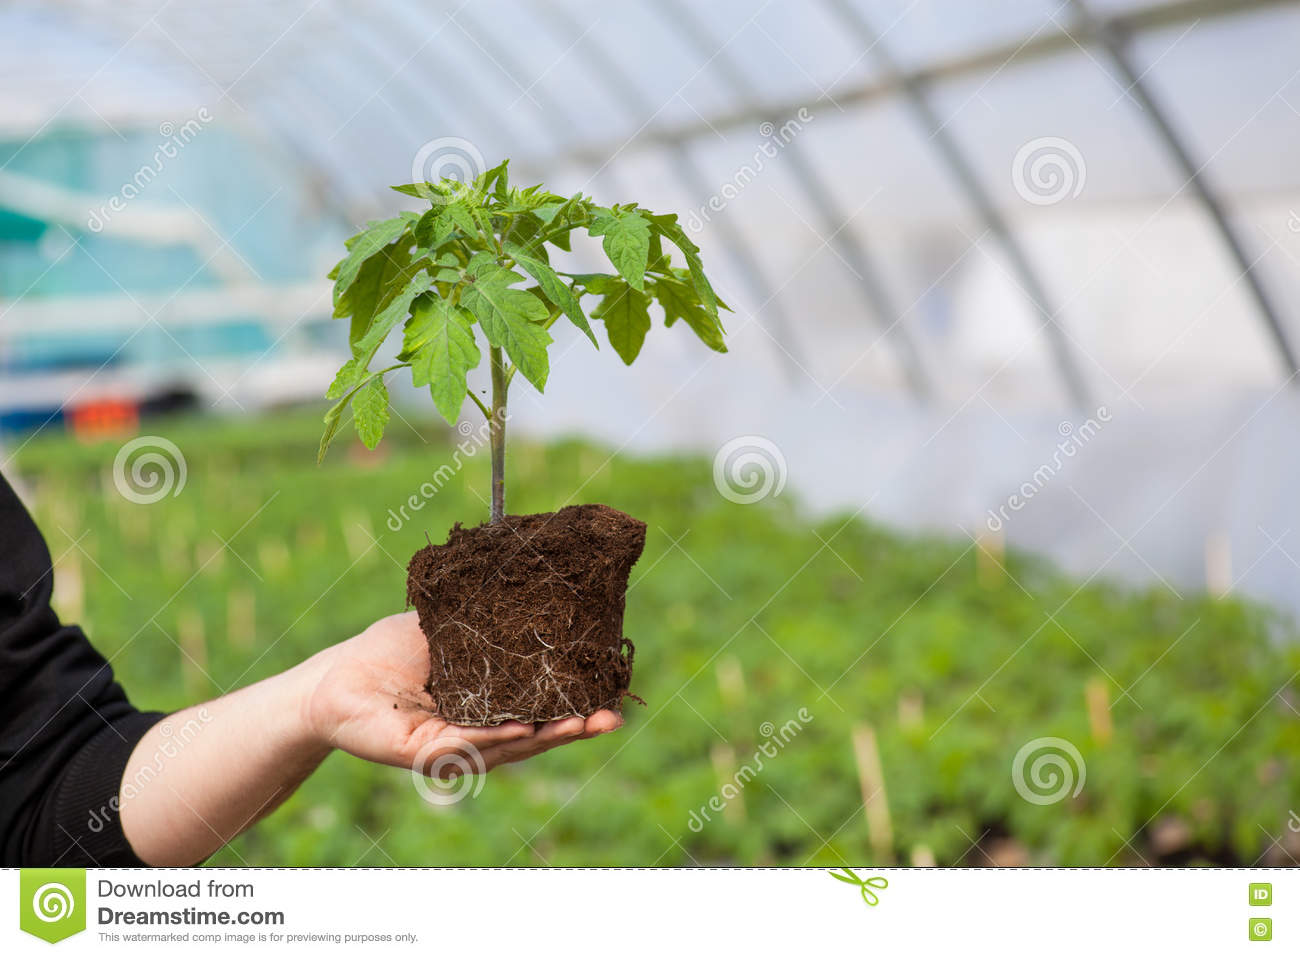 Human hands holding young plant with soil over blurred nature background. Ecology World Environment Day CSR Seedling Go